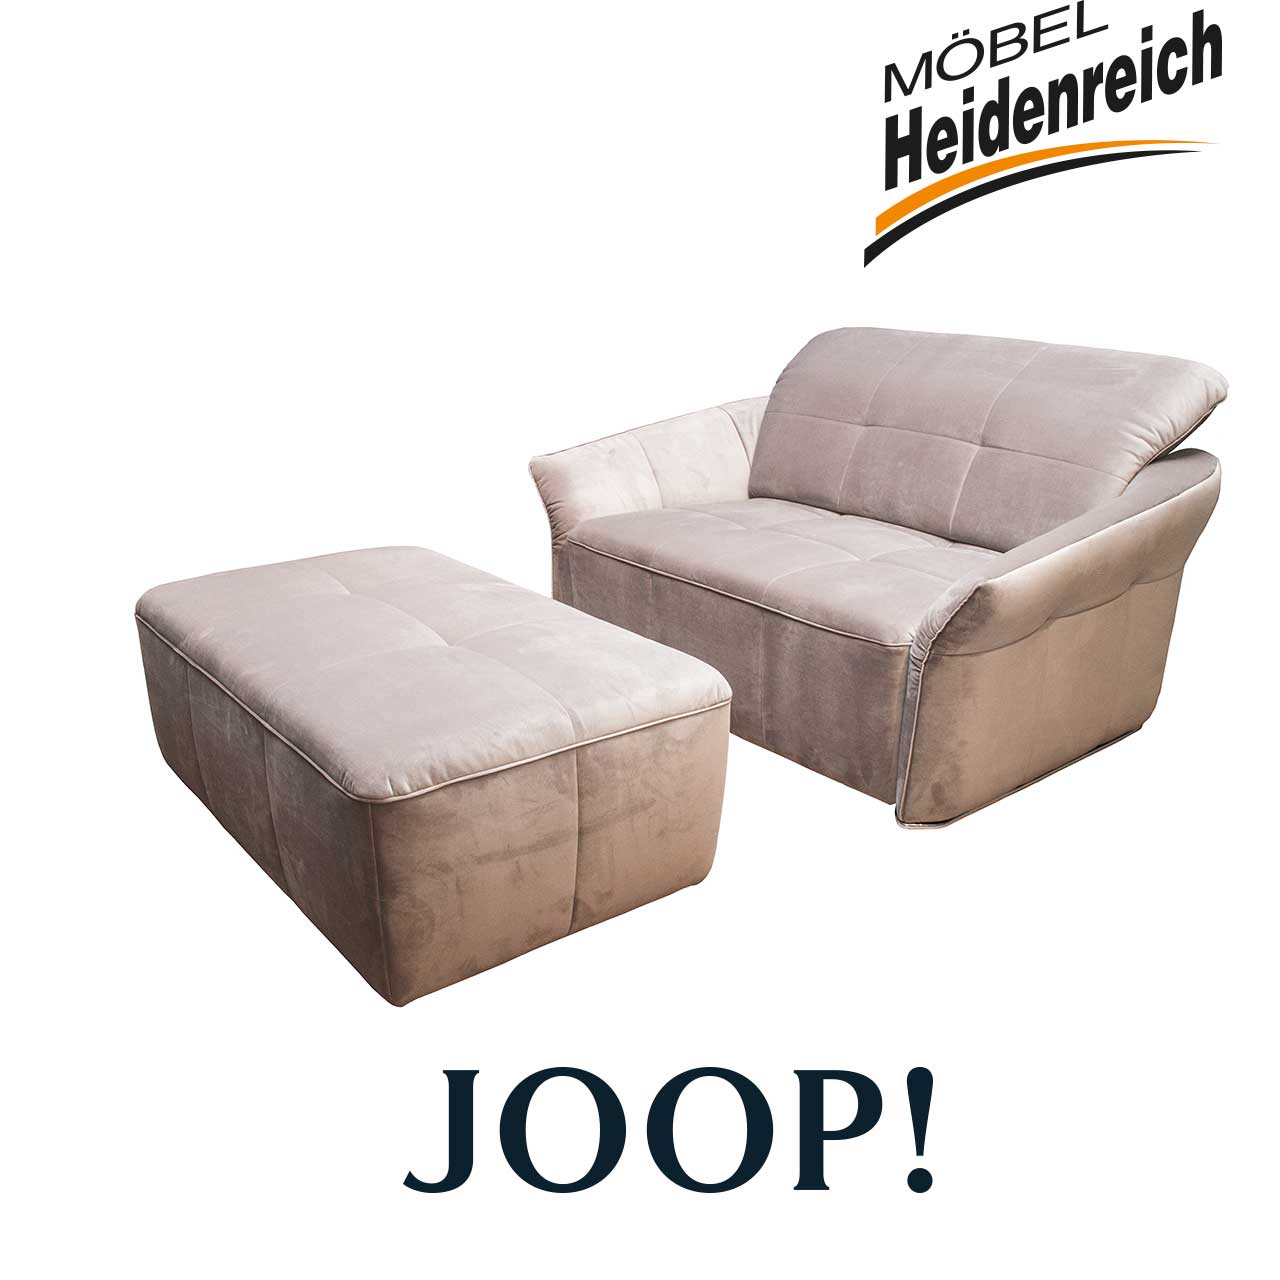 joop sessel overnight mit hocker motorisch grau sessel sale m bel heidenreich. Black Bedroom Furniture Sets. Home Design Ideas